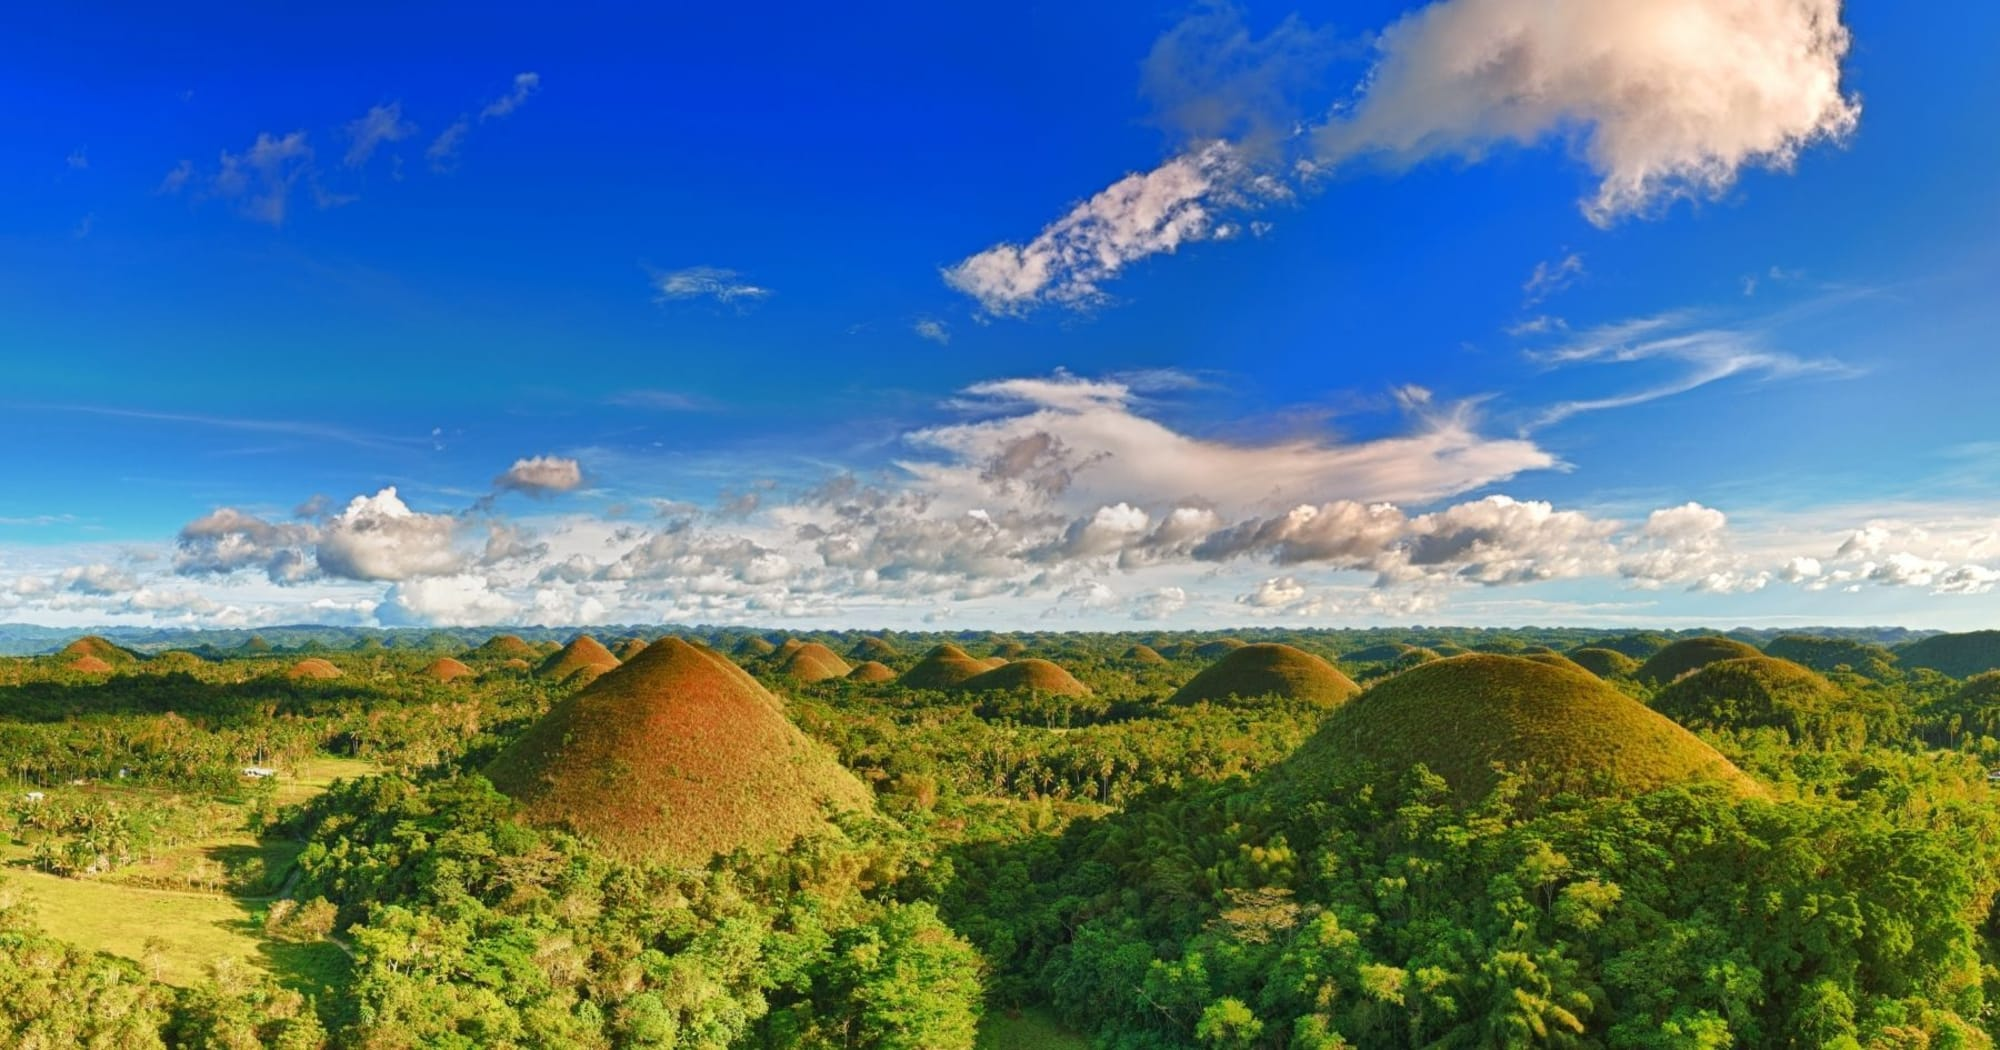 Bubble-to-bubble travel arrangement with other countries can help boost PH economy, say Bohol's Governor